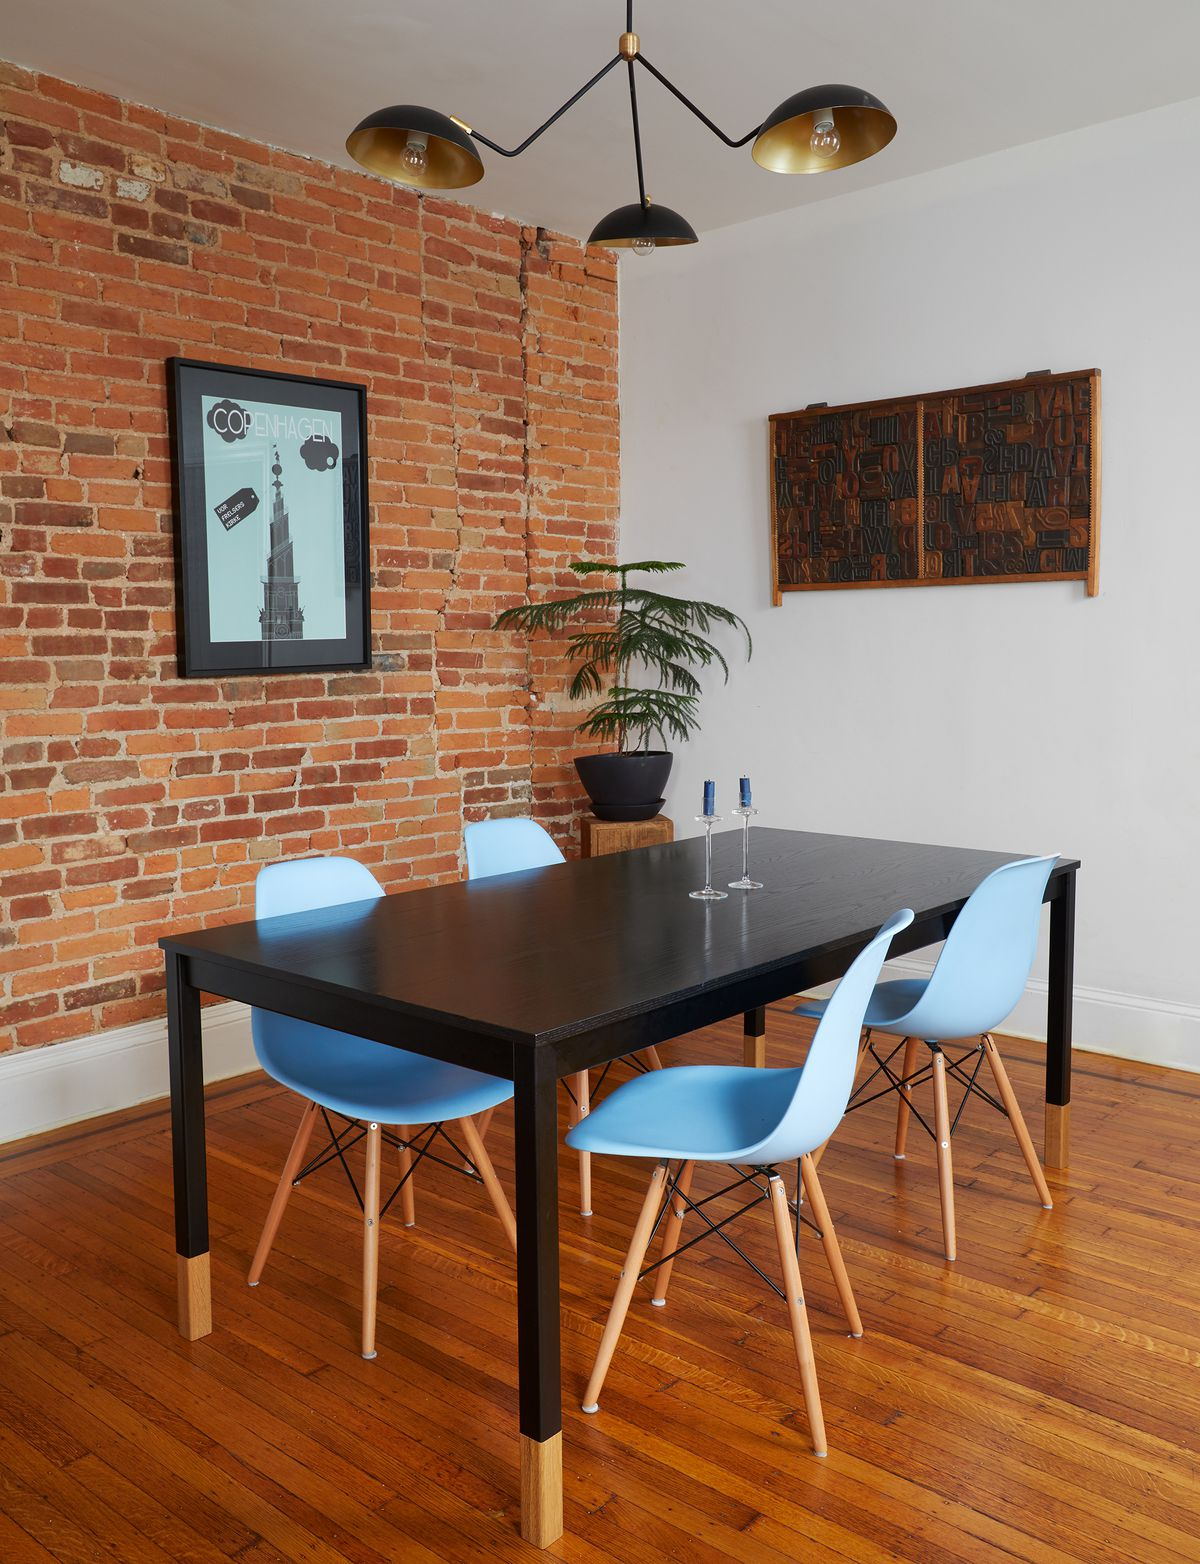 A dining room area. There is a large black table flanked by blue chairs. One of the walls is exposed red brick. The other wall is painted white. There is a plant in a planter in the corner. A work of art hangs on one wall. There is a hanging light fixture